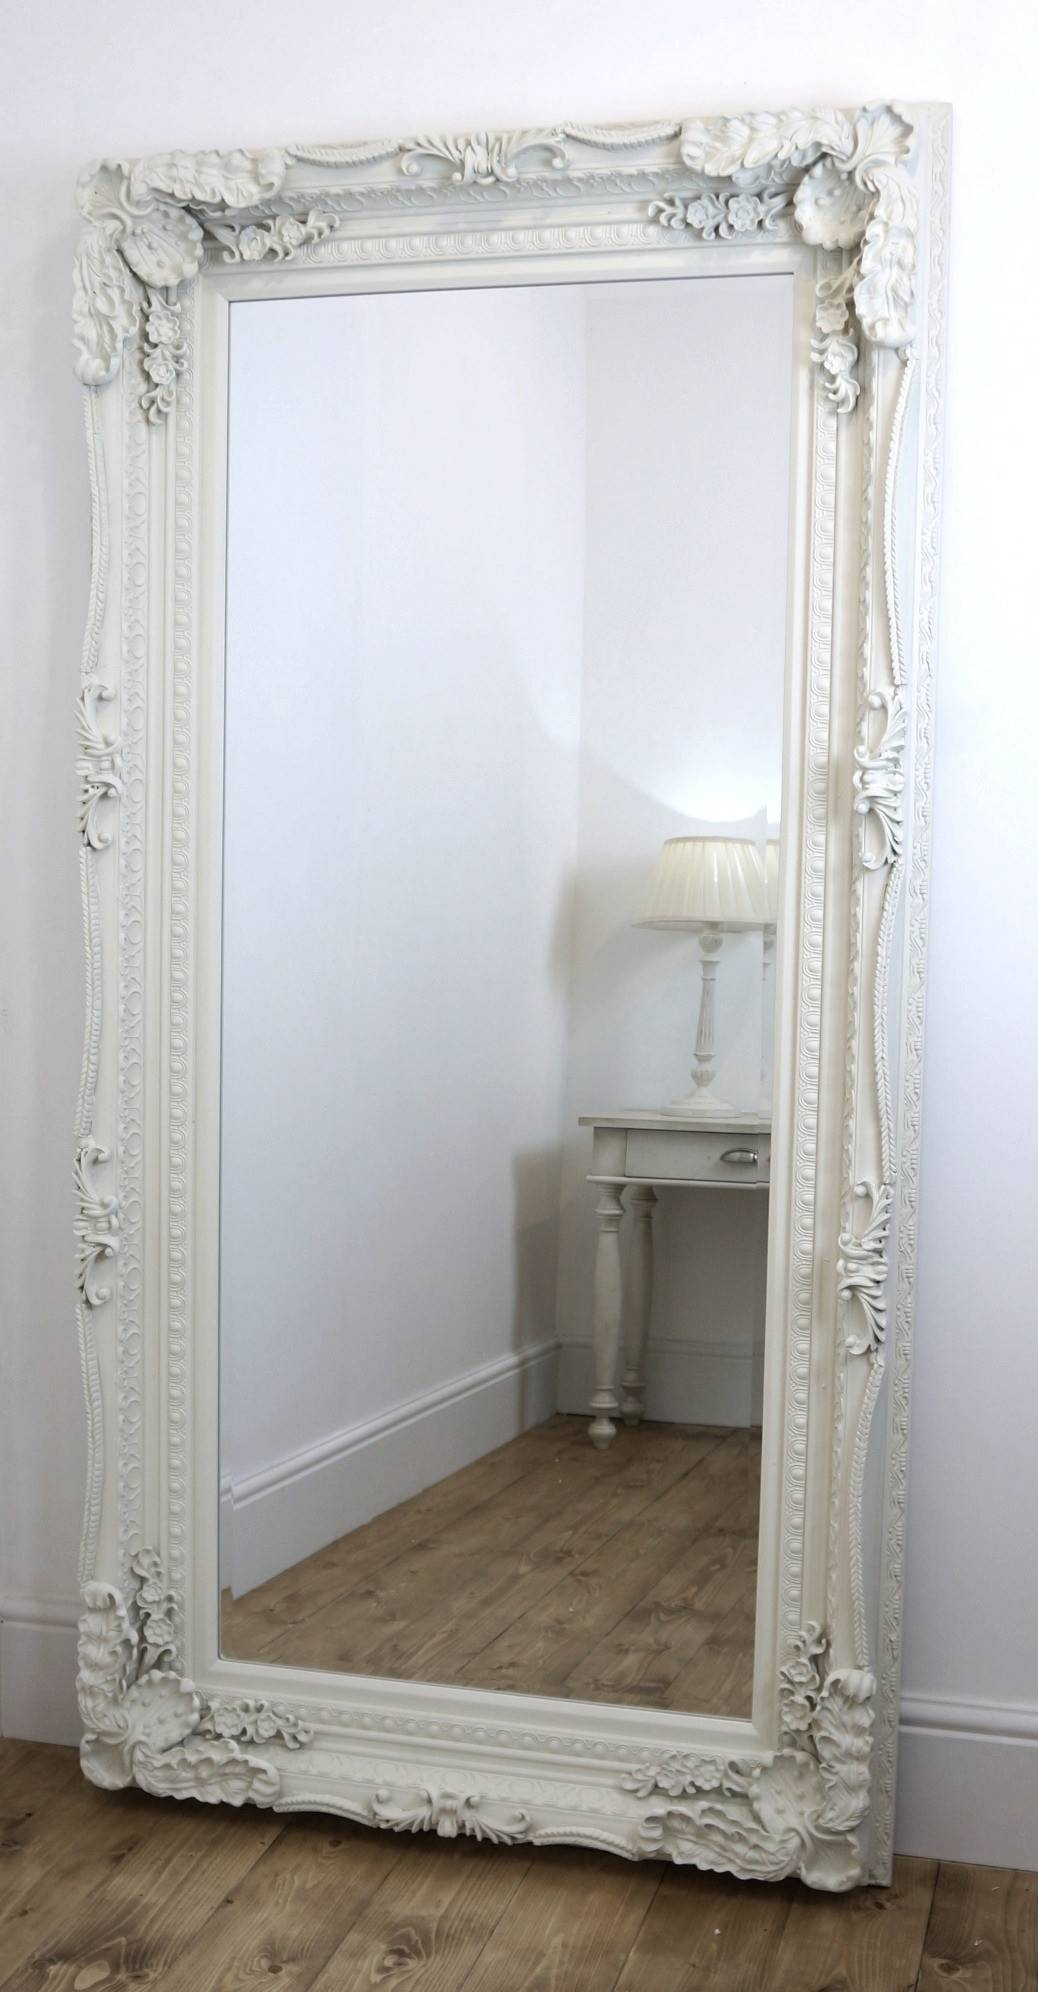 The Best Value White Swept Leaner Mirror Online Inside Large White Floor Mirrors (View 15 of 15)